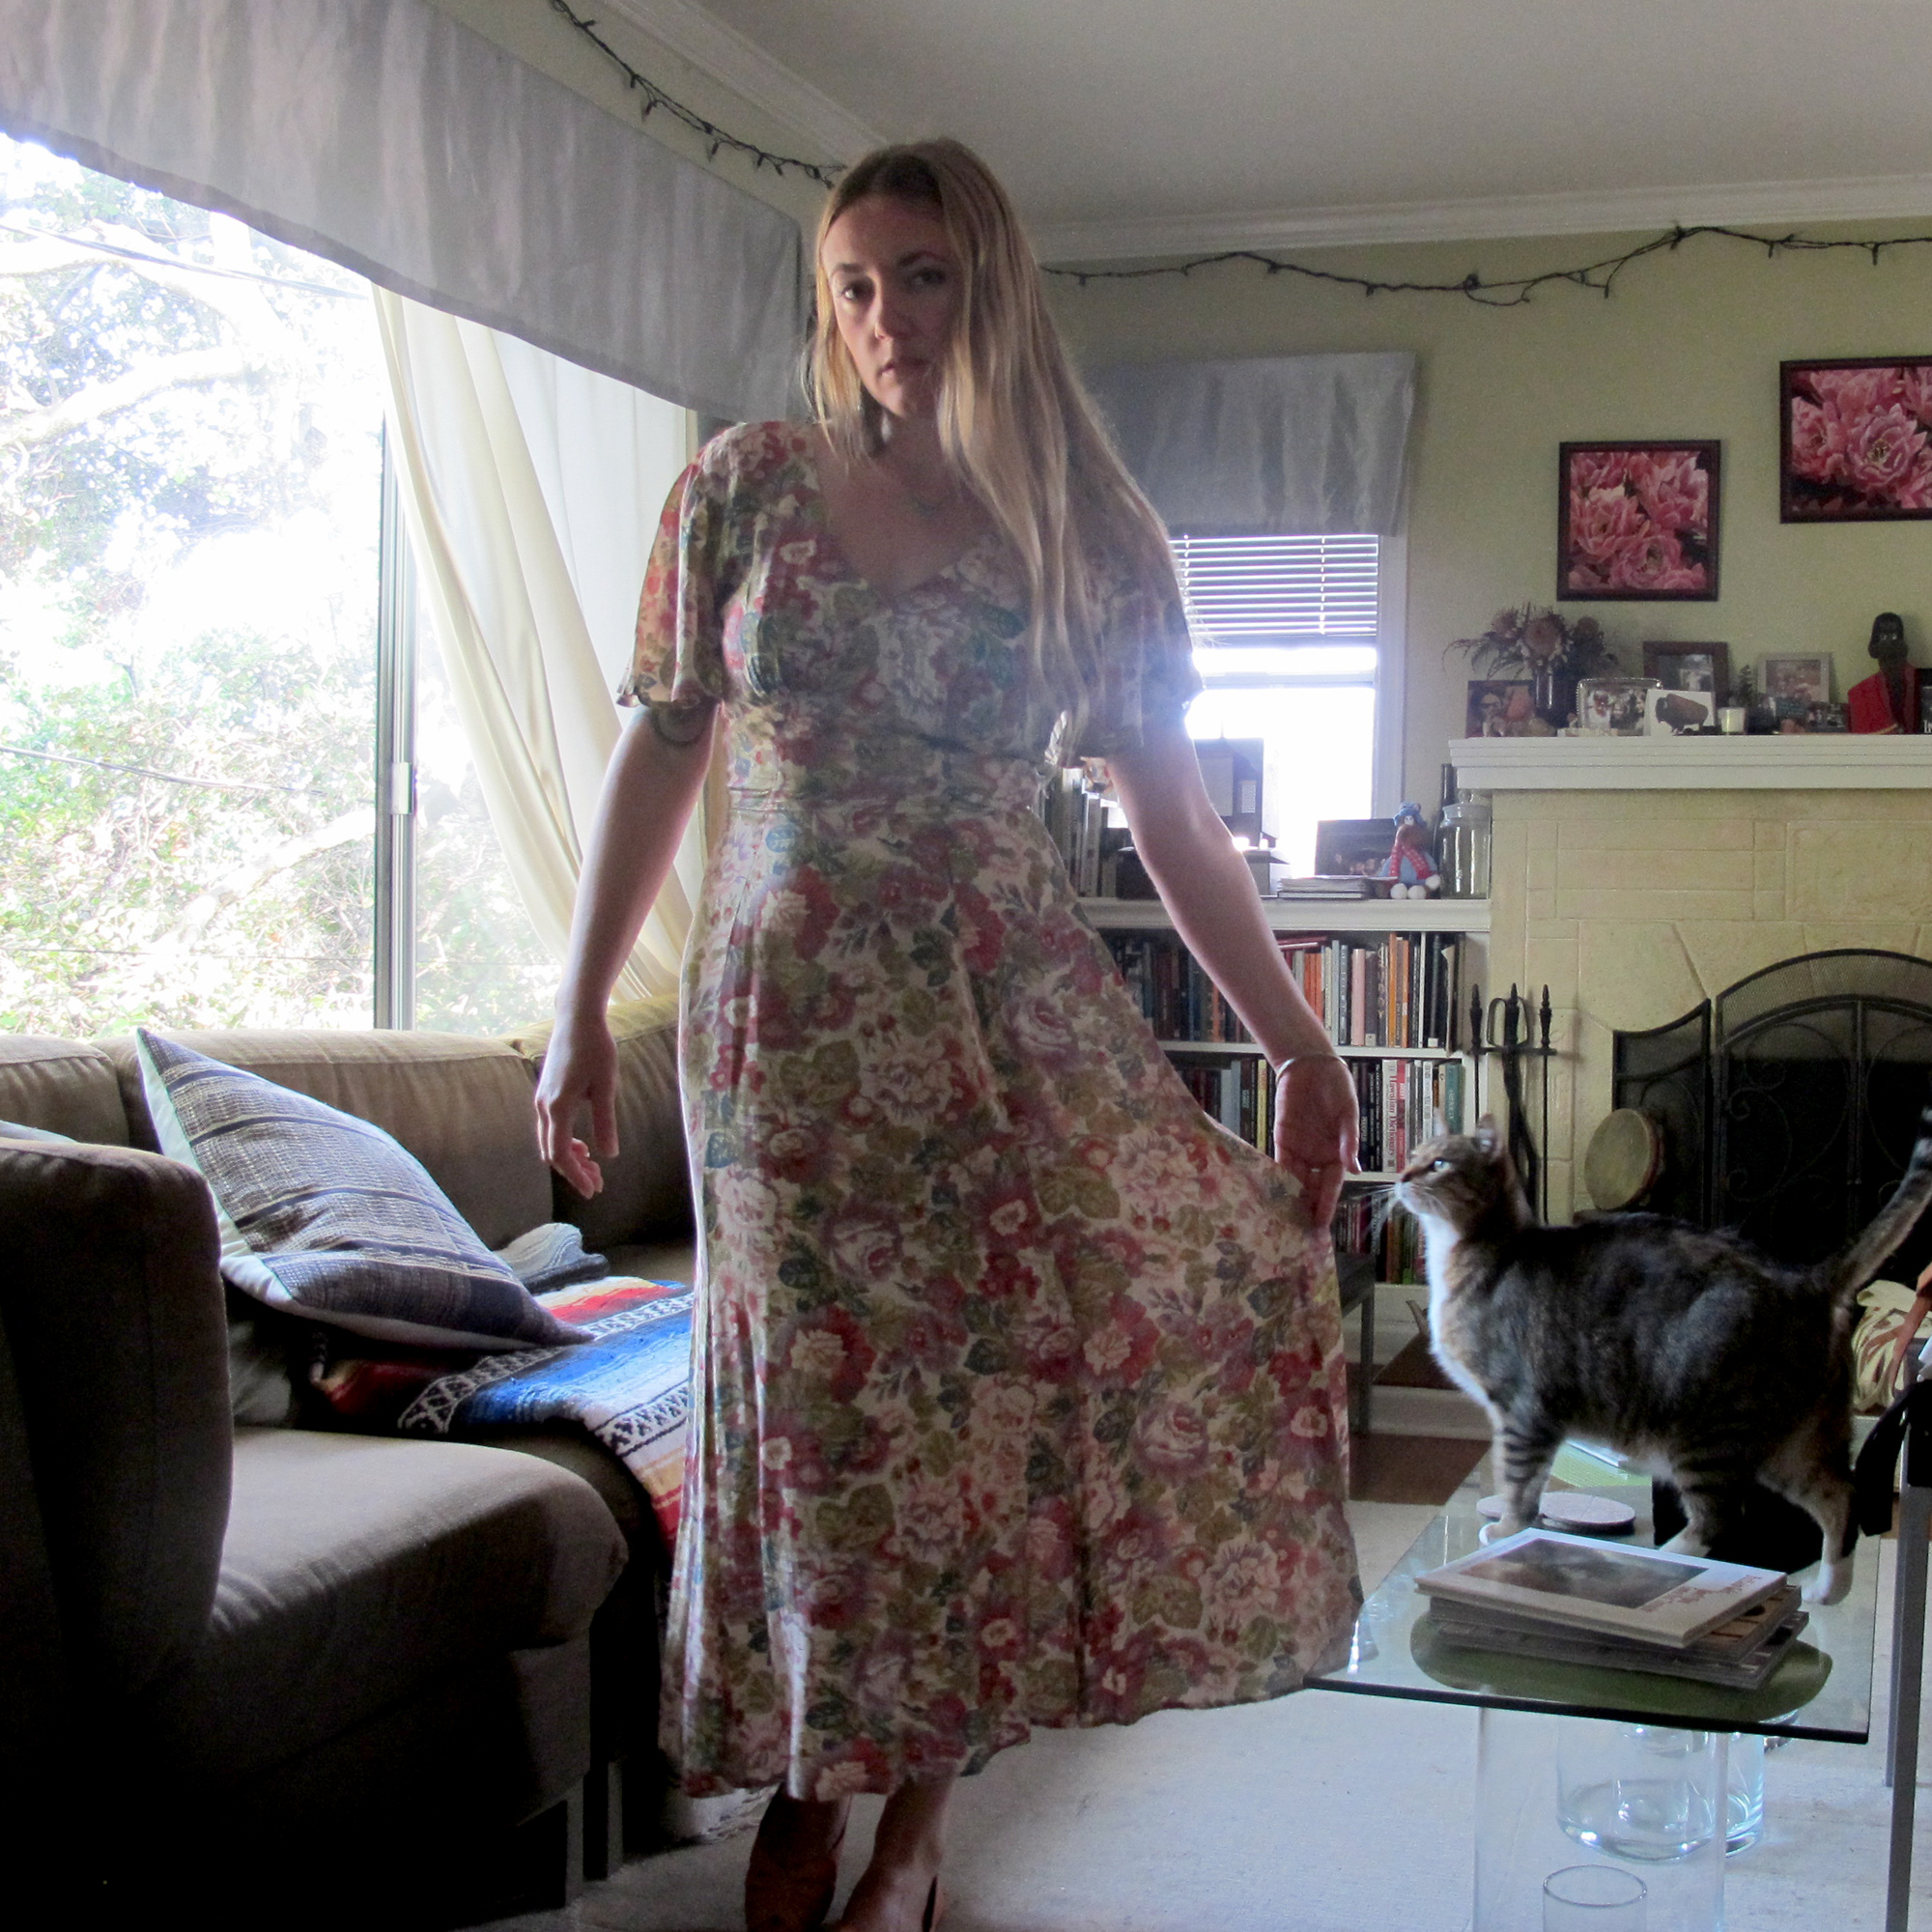 (I love how Otis jumped up on the coffee table right when the timer on the camera went off.)